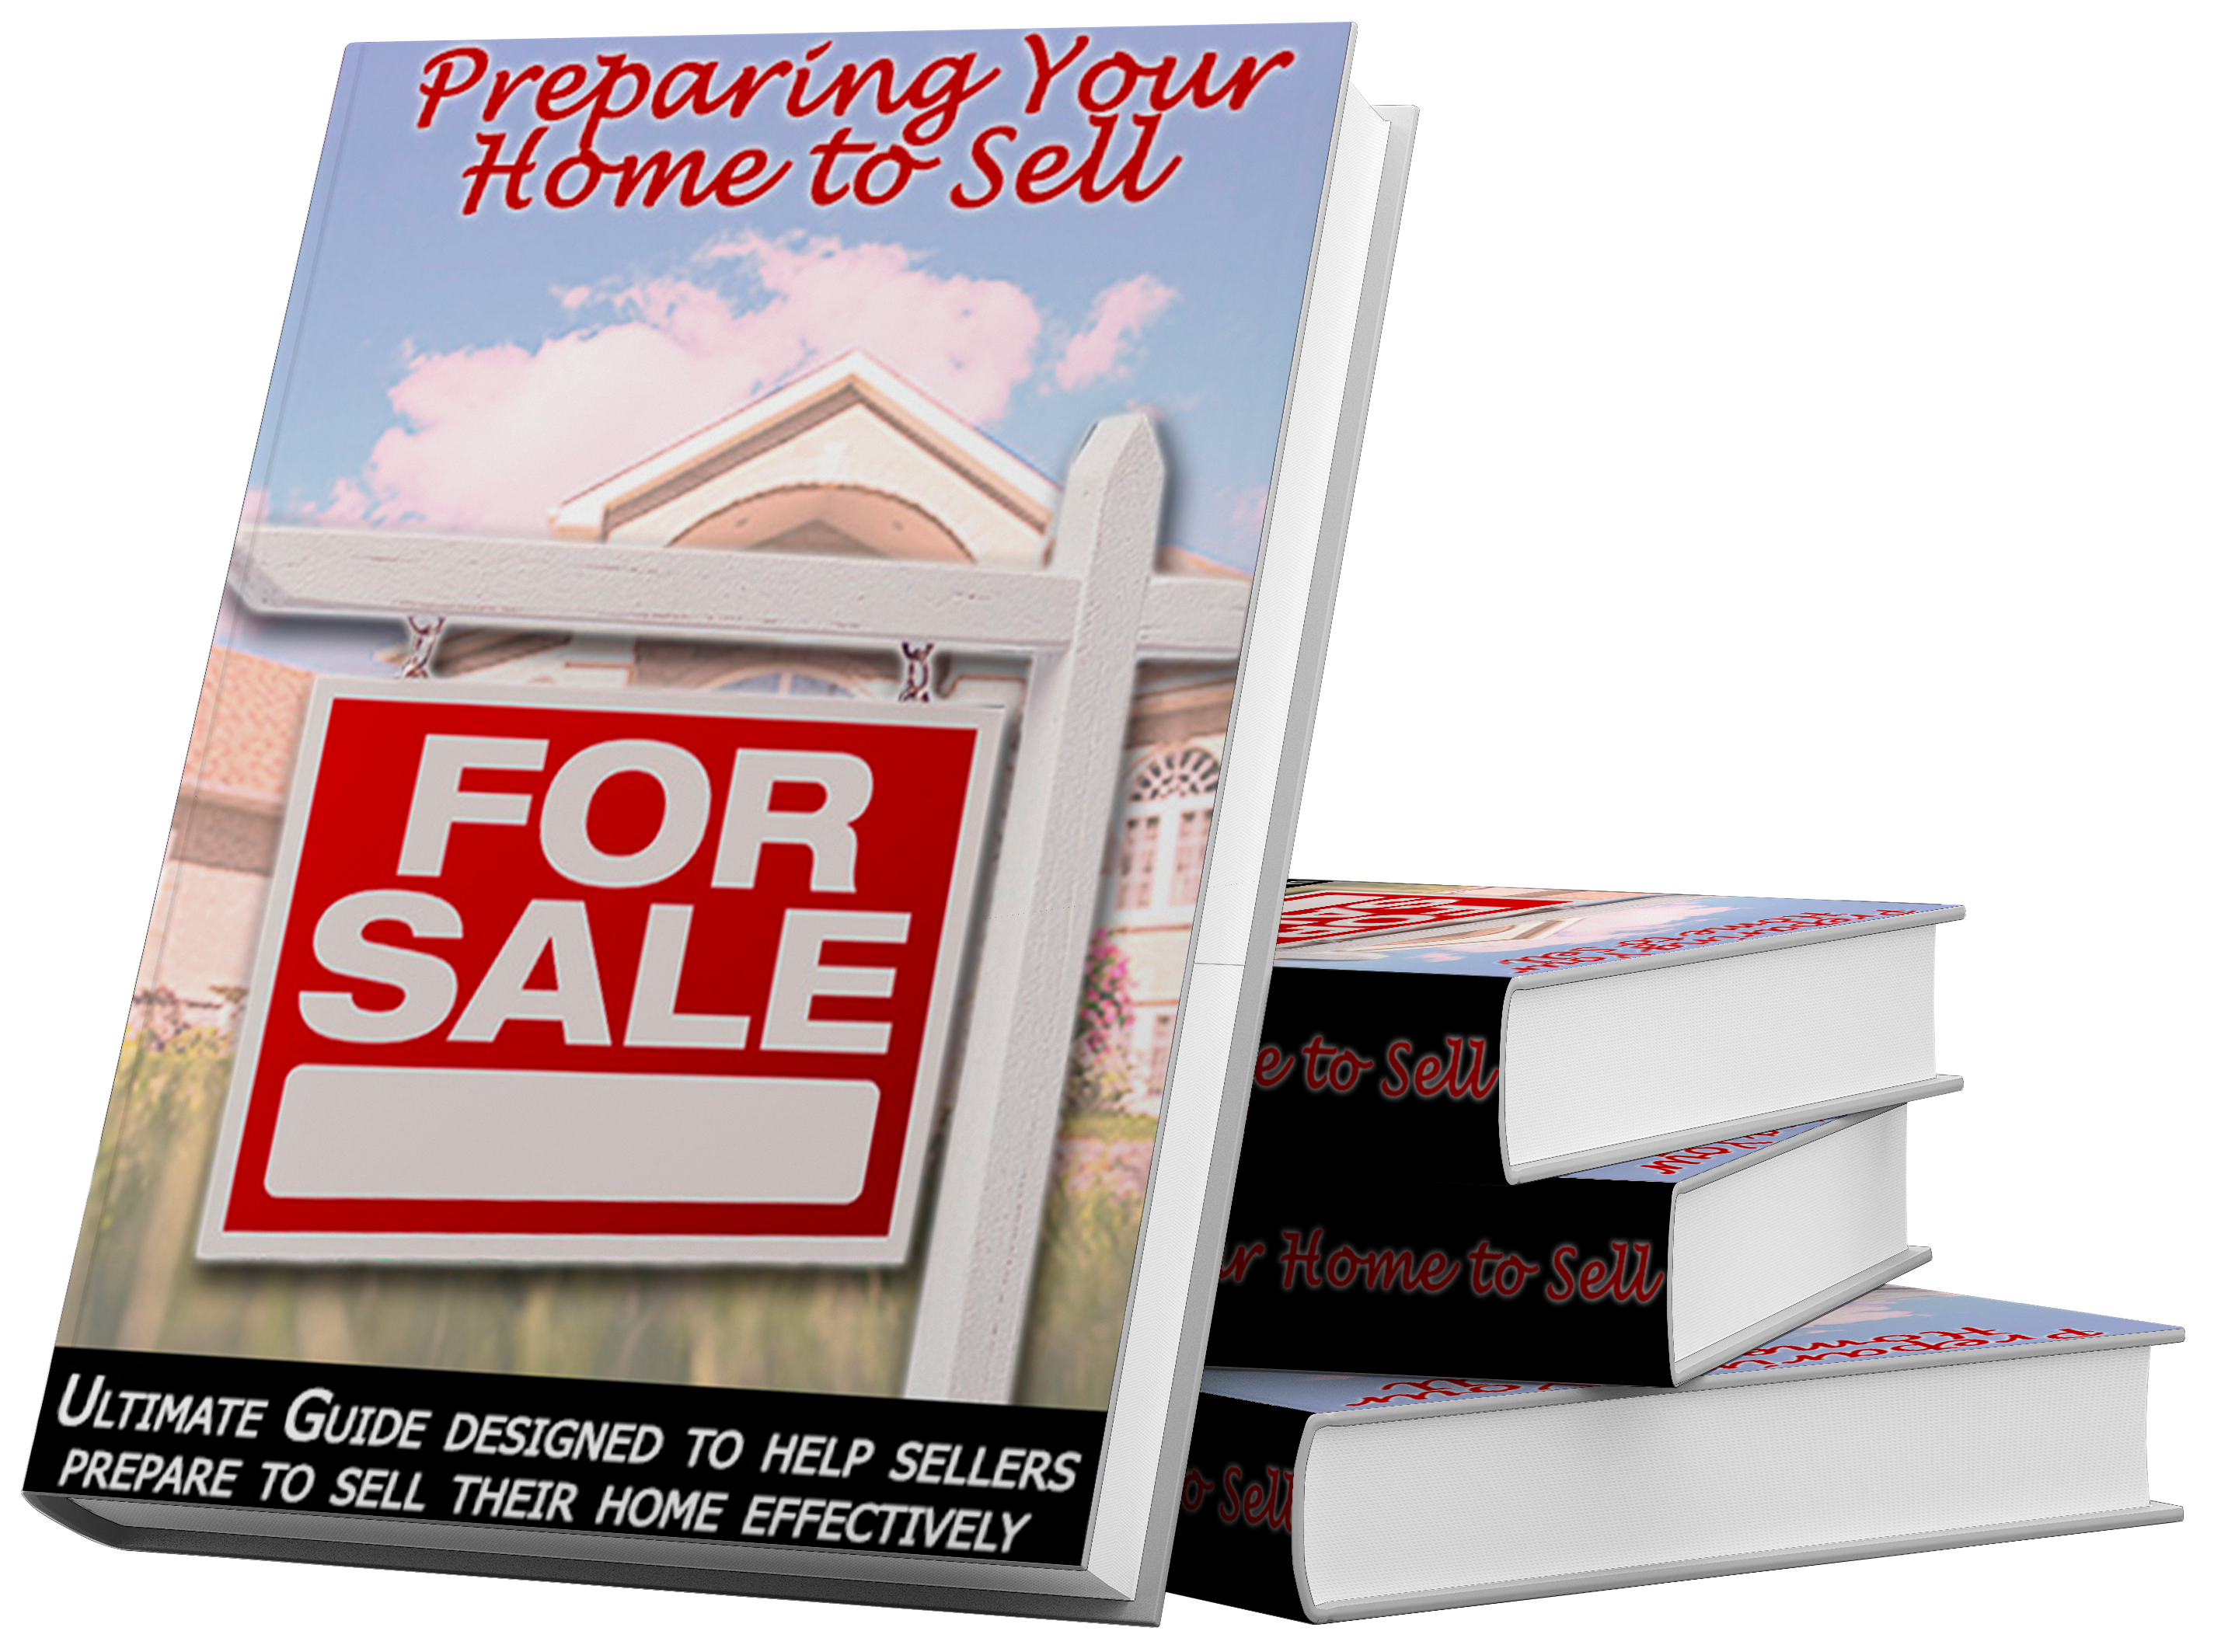 PreparingYourHomeToSell 03